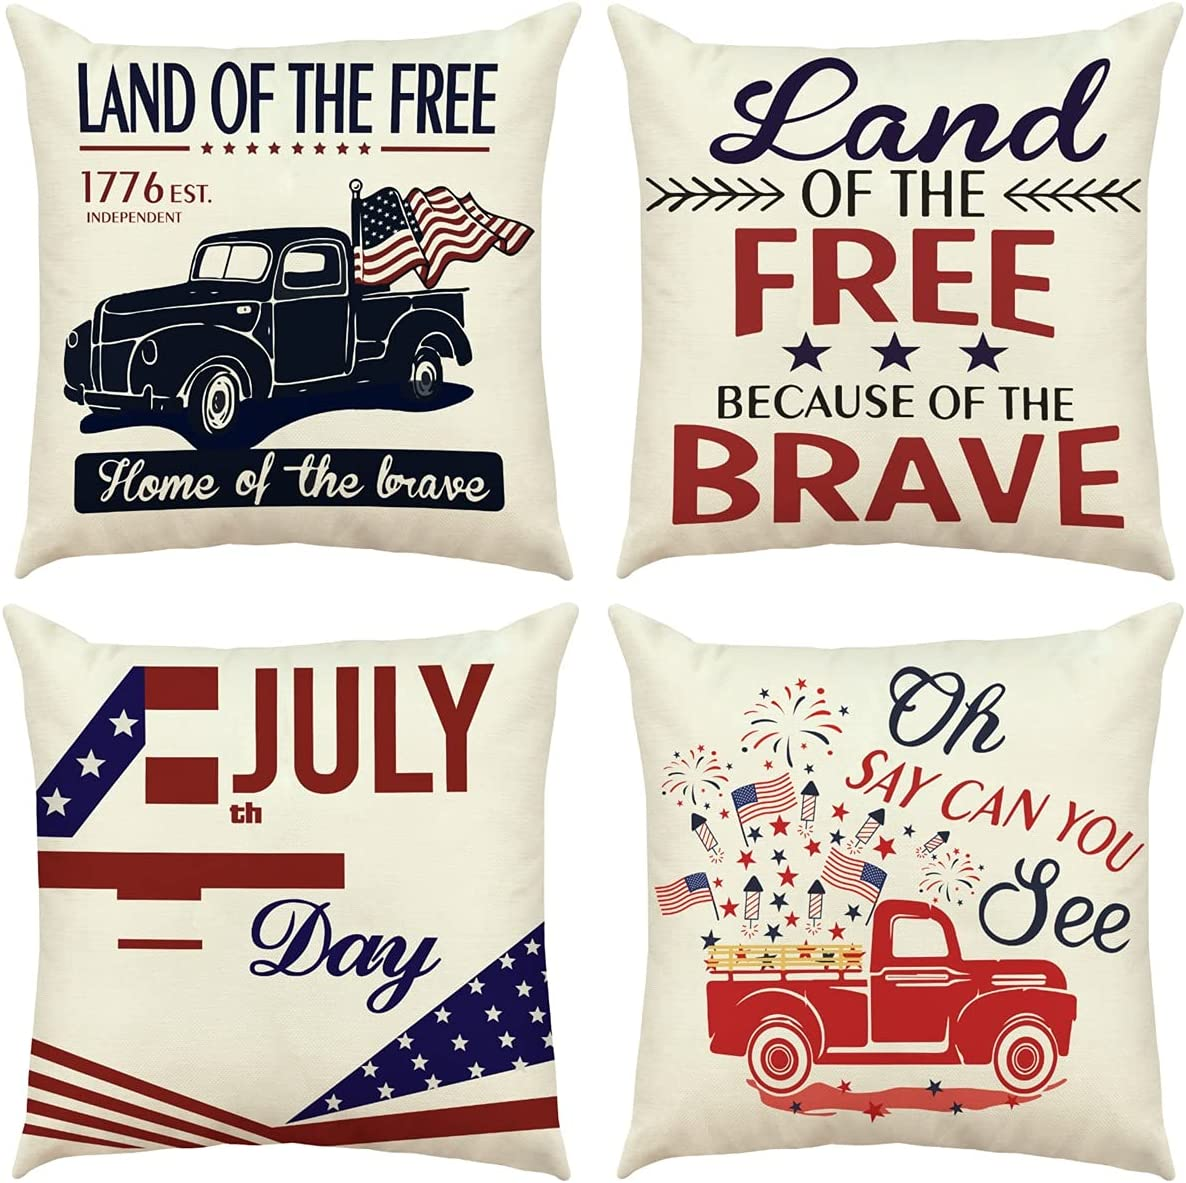 RioGree 4th of July Decorations Pillow Covers 18x18 Set of 4 for Home Decor Fourth of July Decorations Throw Pillows Cover Independence Memorial Day Patriotic Decorations Cushion Case